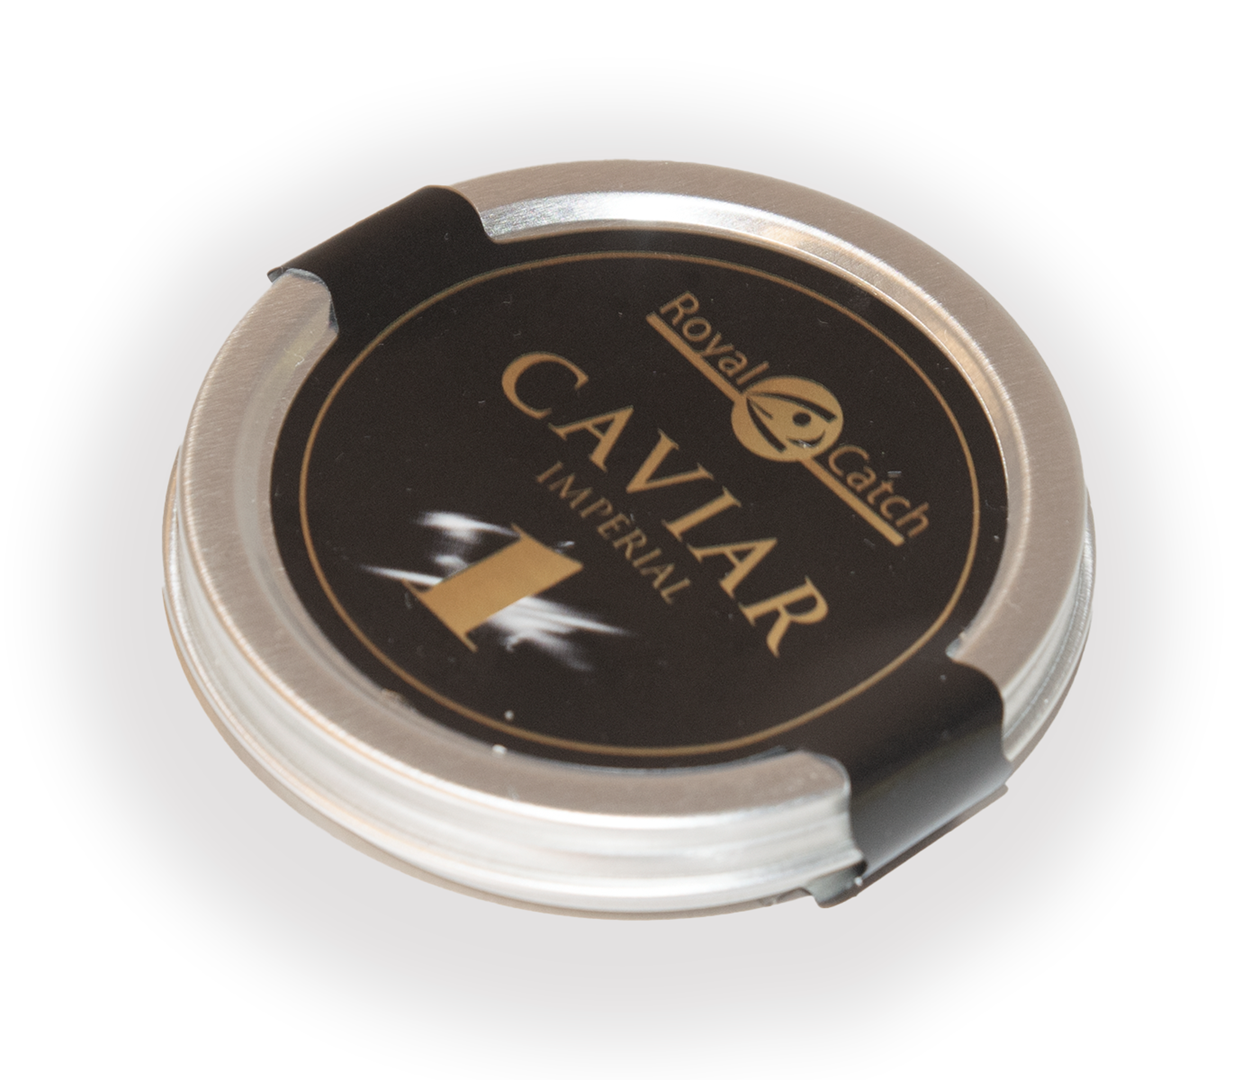 Productafbeelding CAVIAR IMPERIAL RC NO 1 30GR